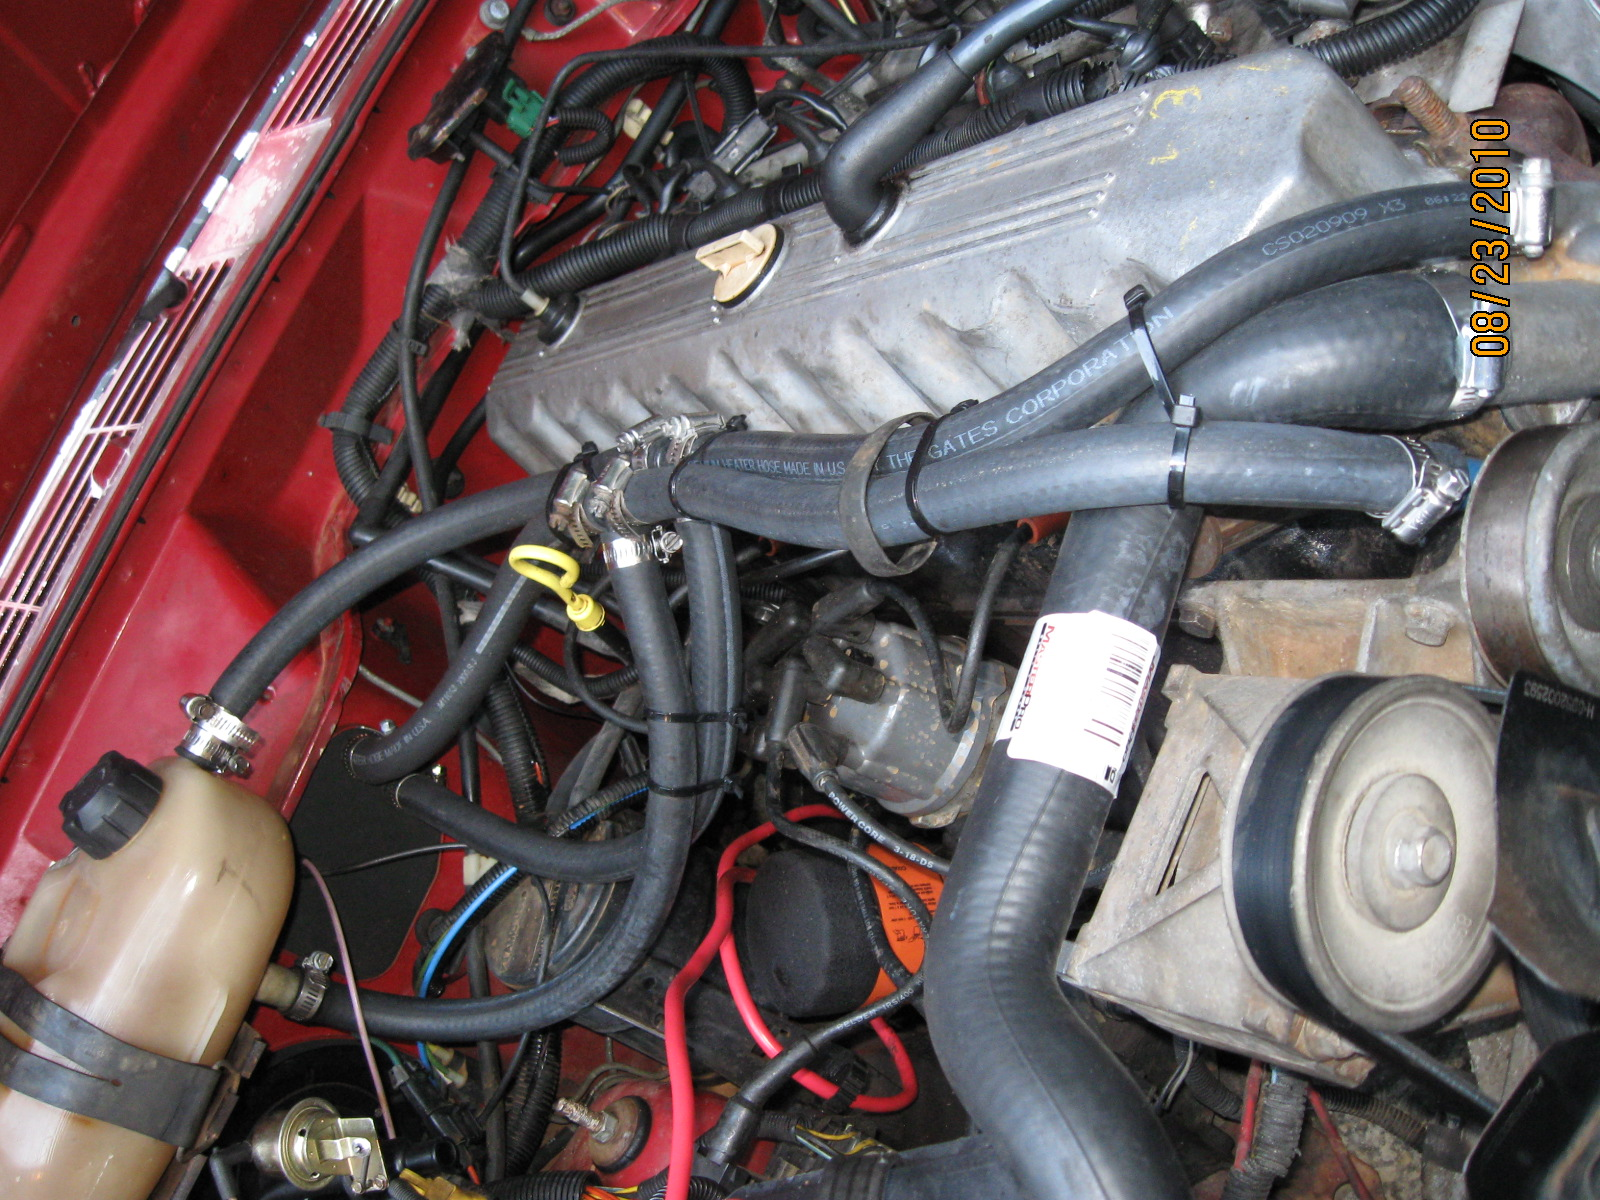 89 comanche pioneer a straight six with a closed air system rh justanswer com jeep cj7 heater hose diagram 1990 jeep cherokee heater hose diagram